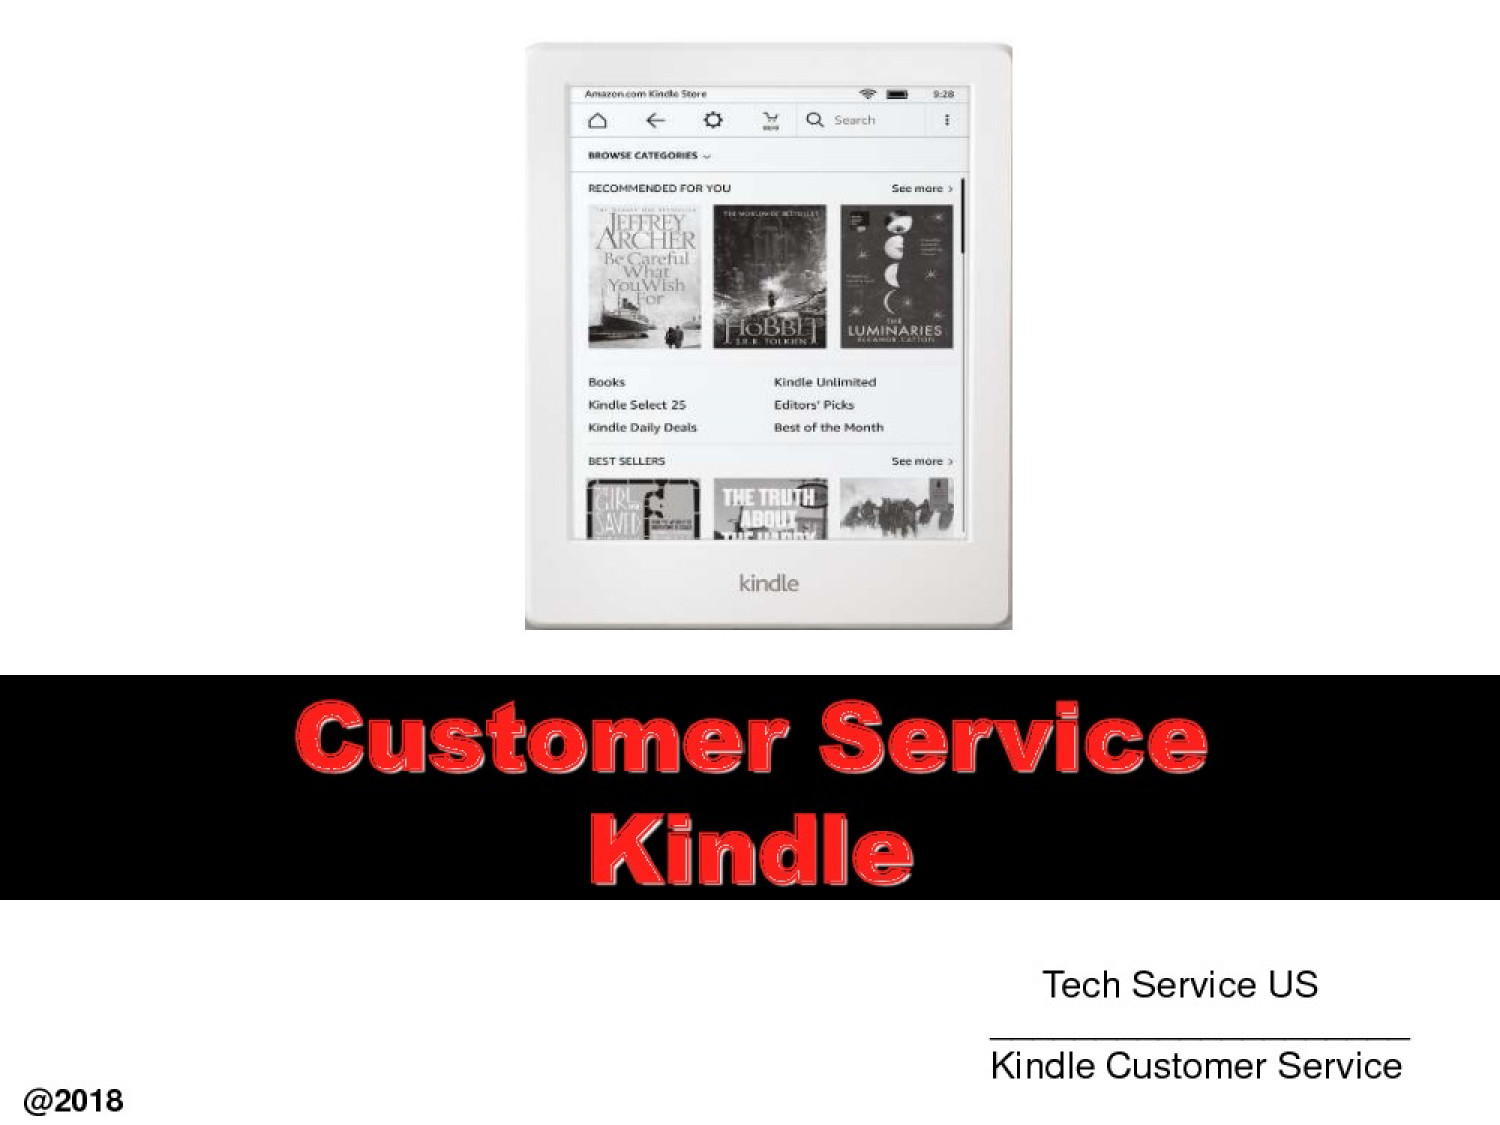 Get Instant Kindle Customer Service For Your Kindle Infographic